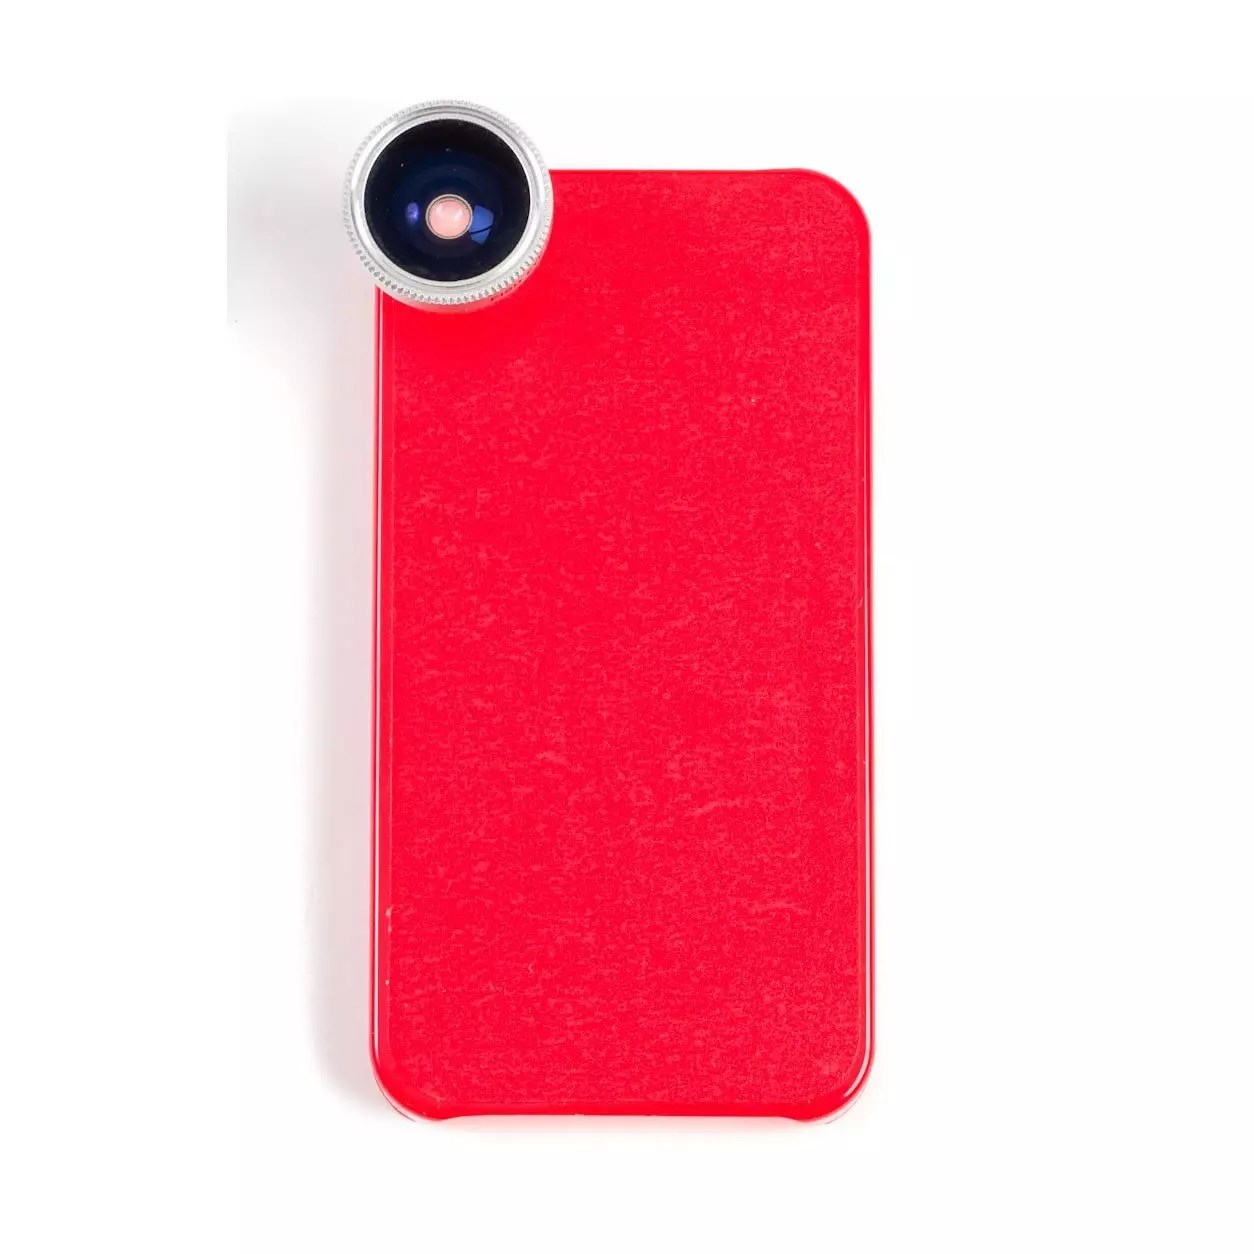 Core Lens iPhone Case 4/4s + Fisheye